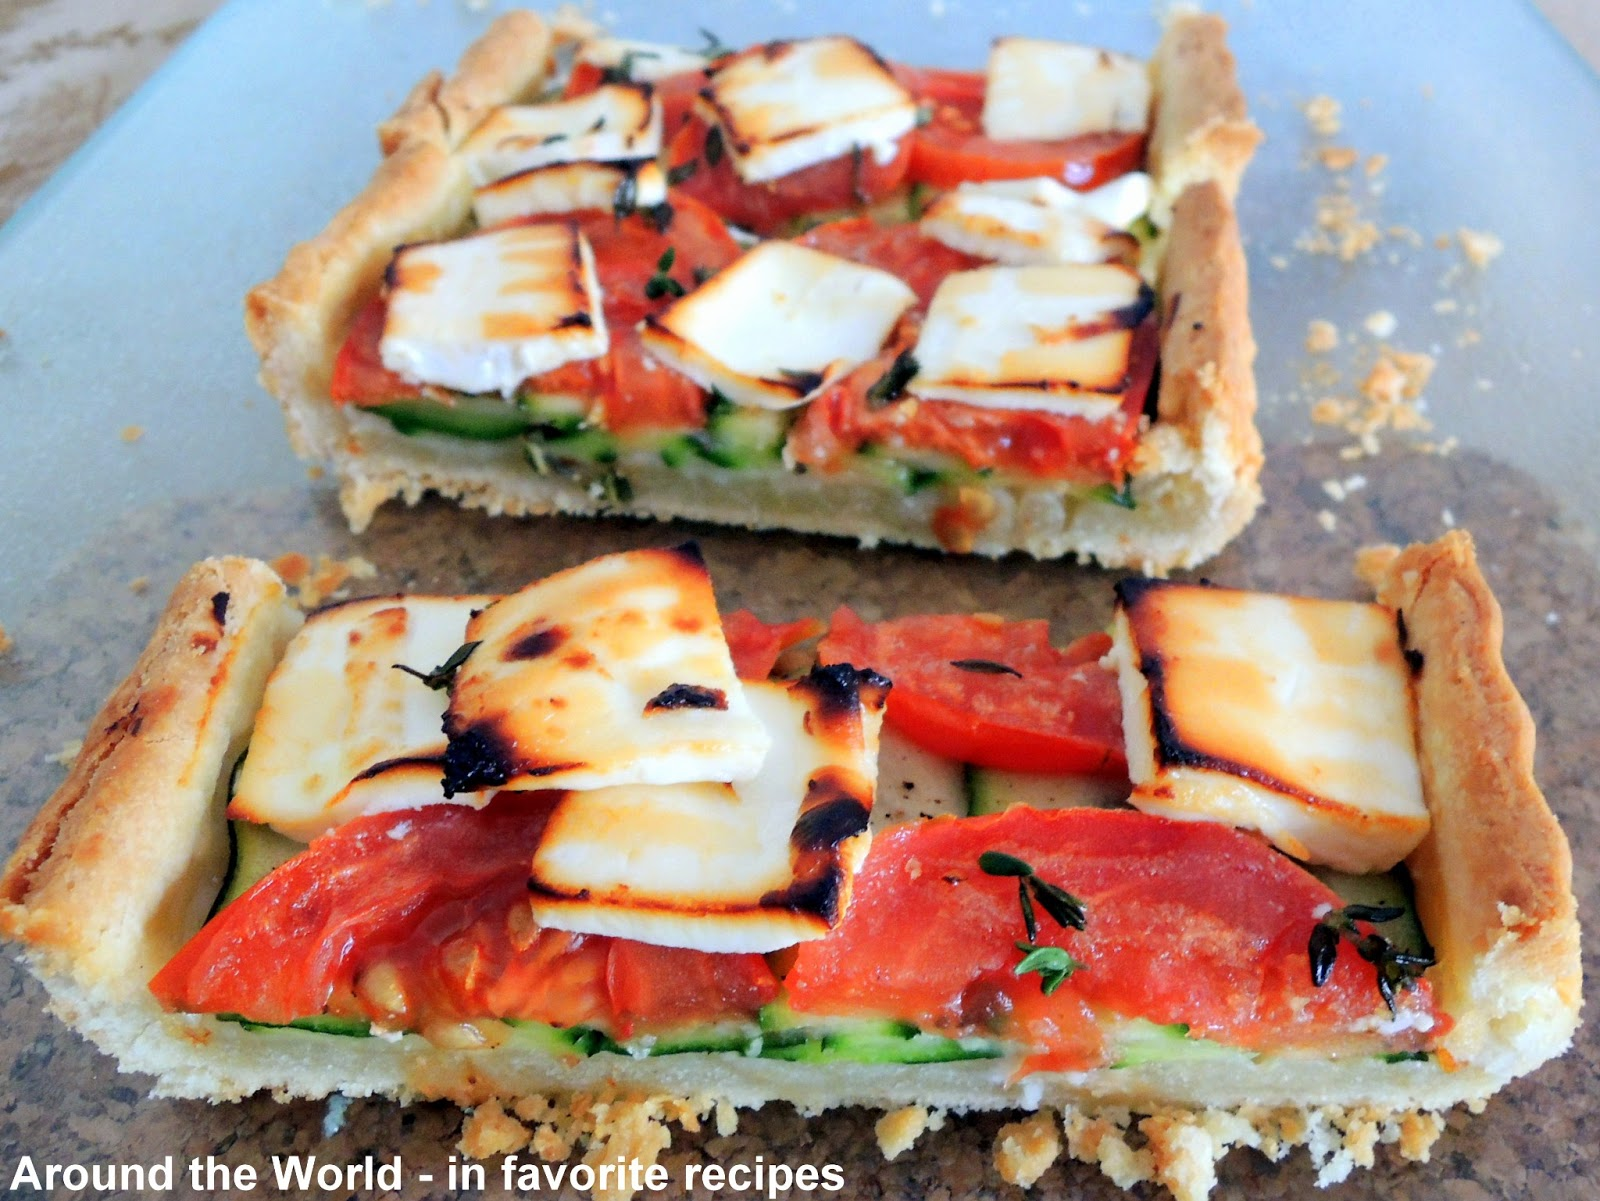 ... the World - in favorite recipes: Pies, Pizzas, Tarts, Quiches